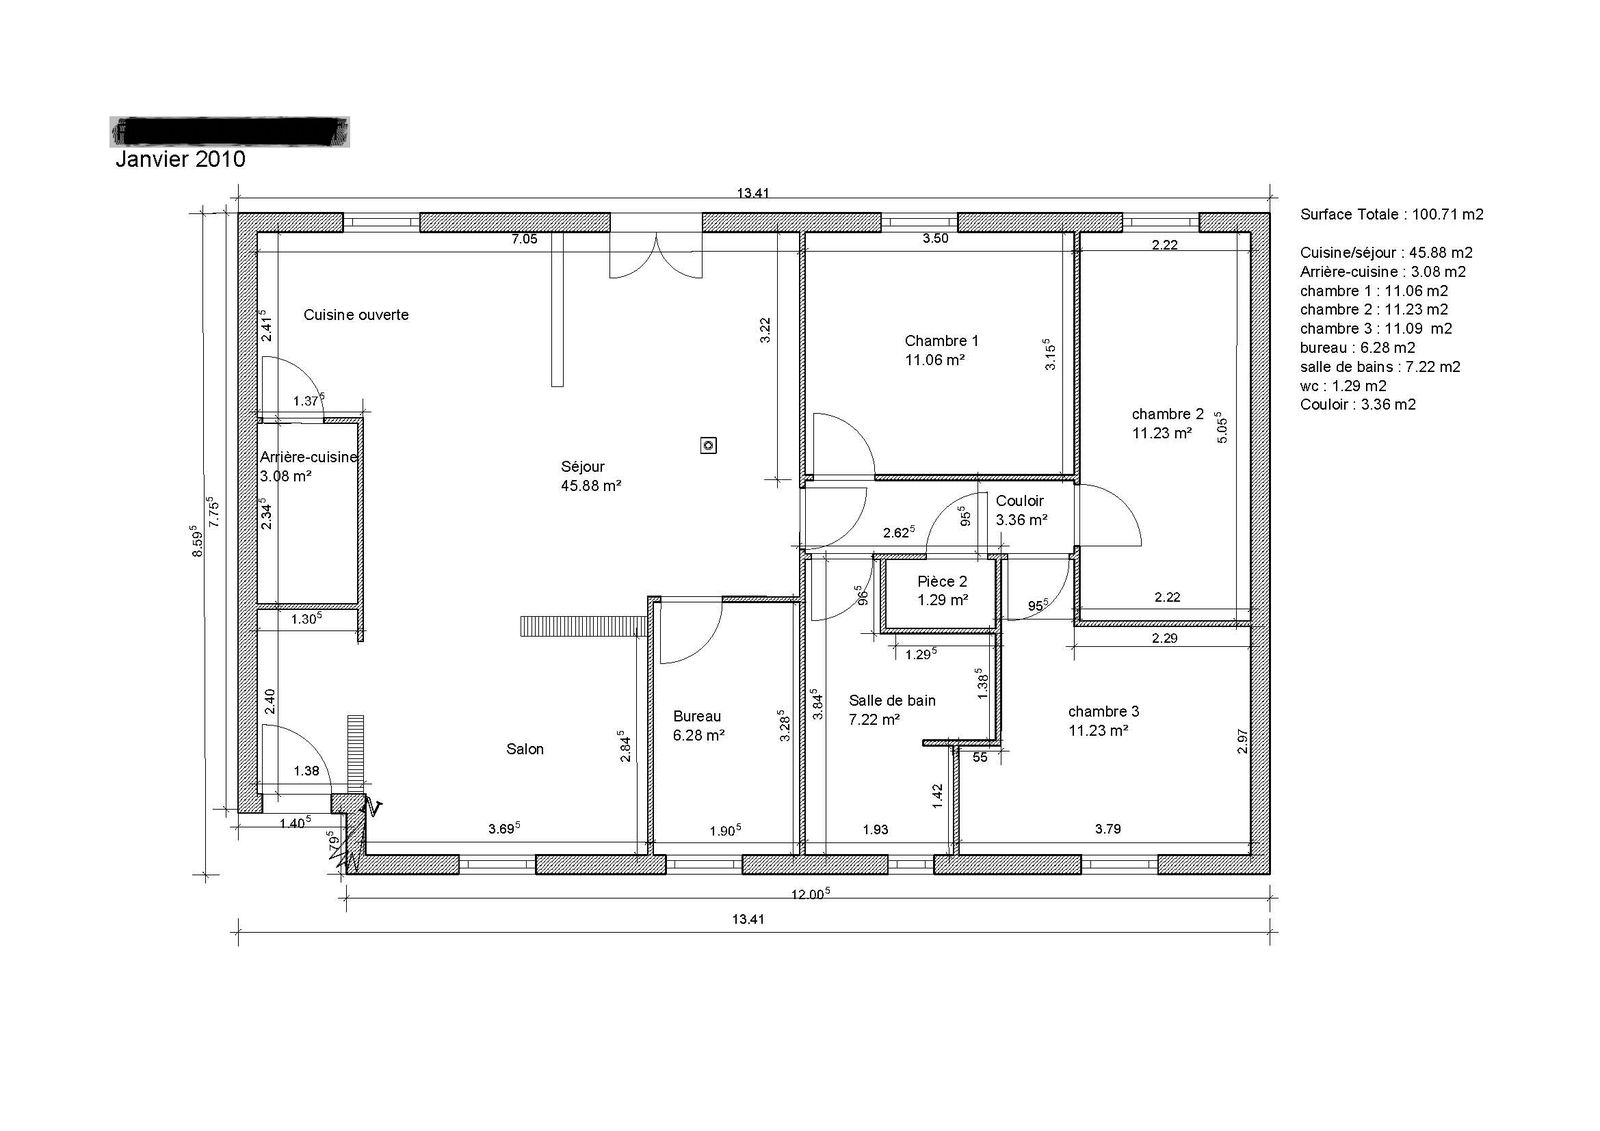 sans_garage_100m2_hab_mars2010-en-plan-copie-1.jpg (1600×1131)